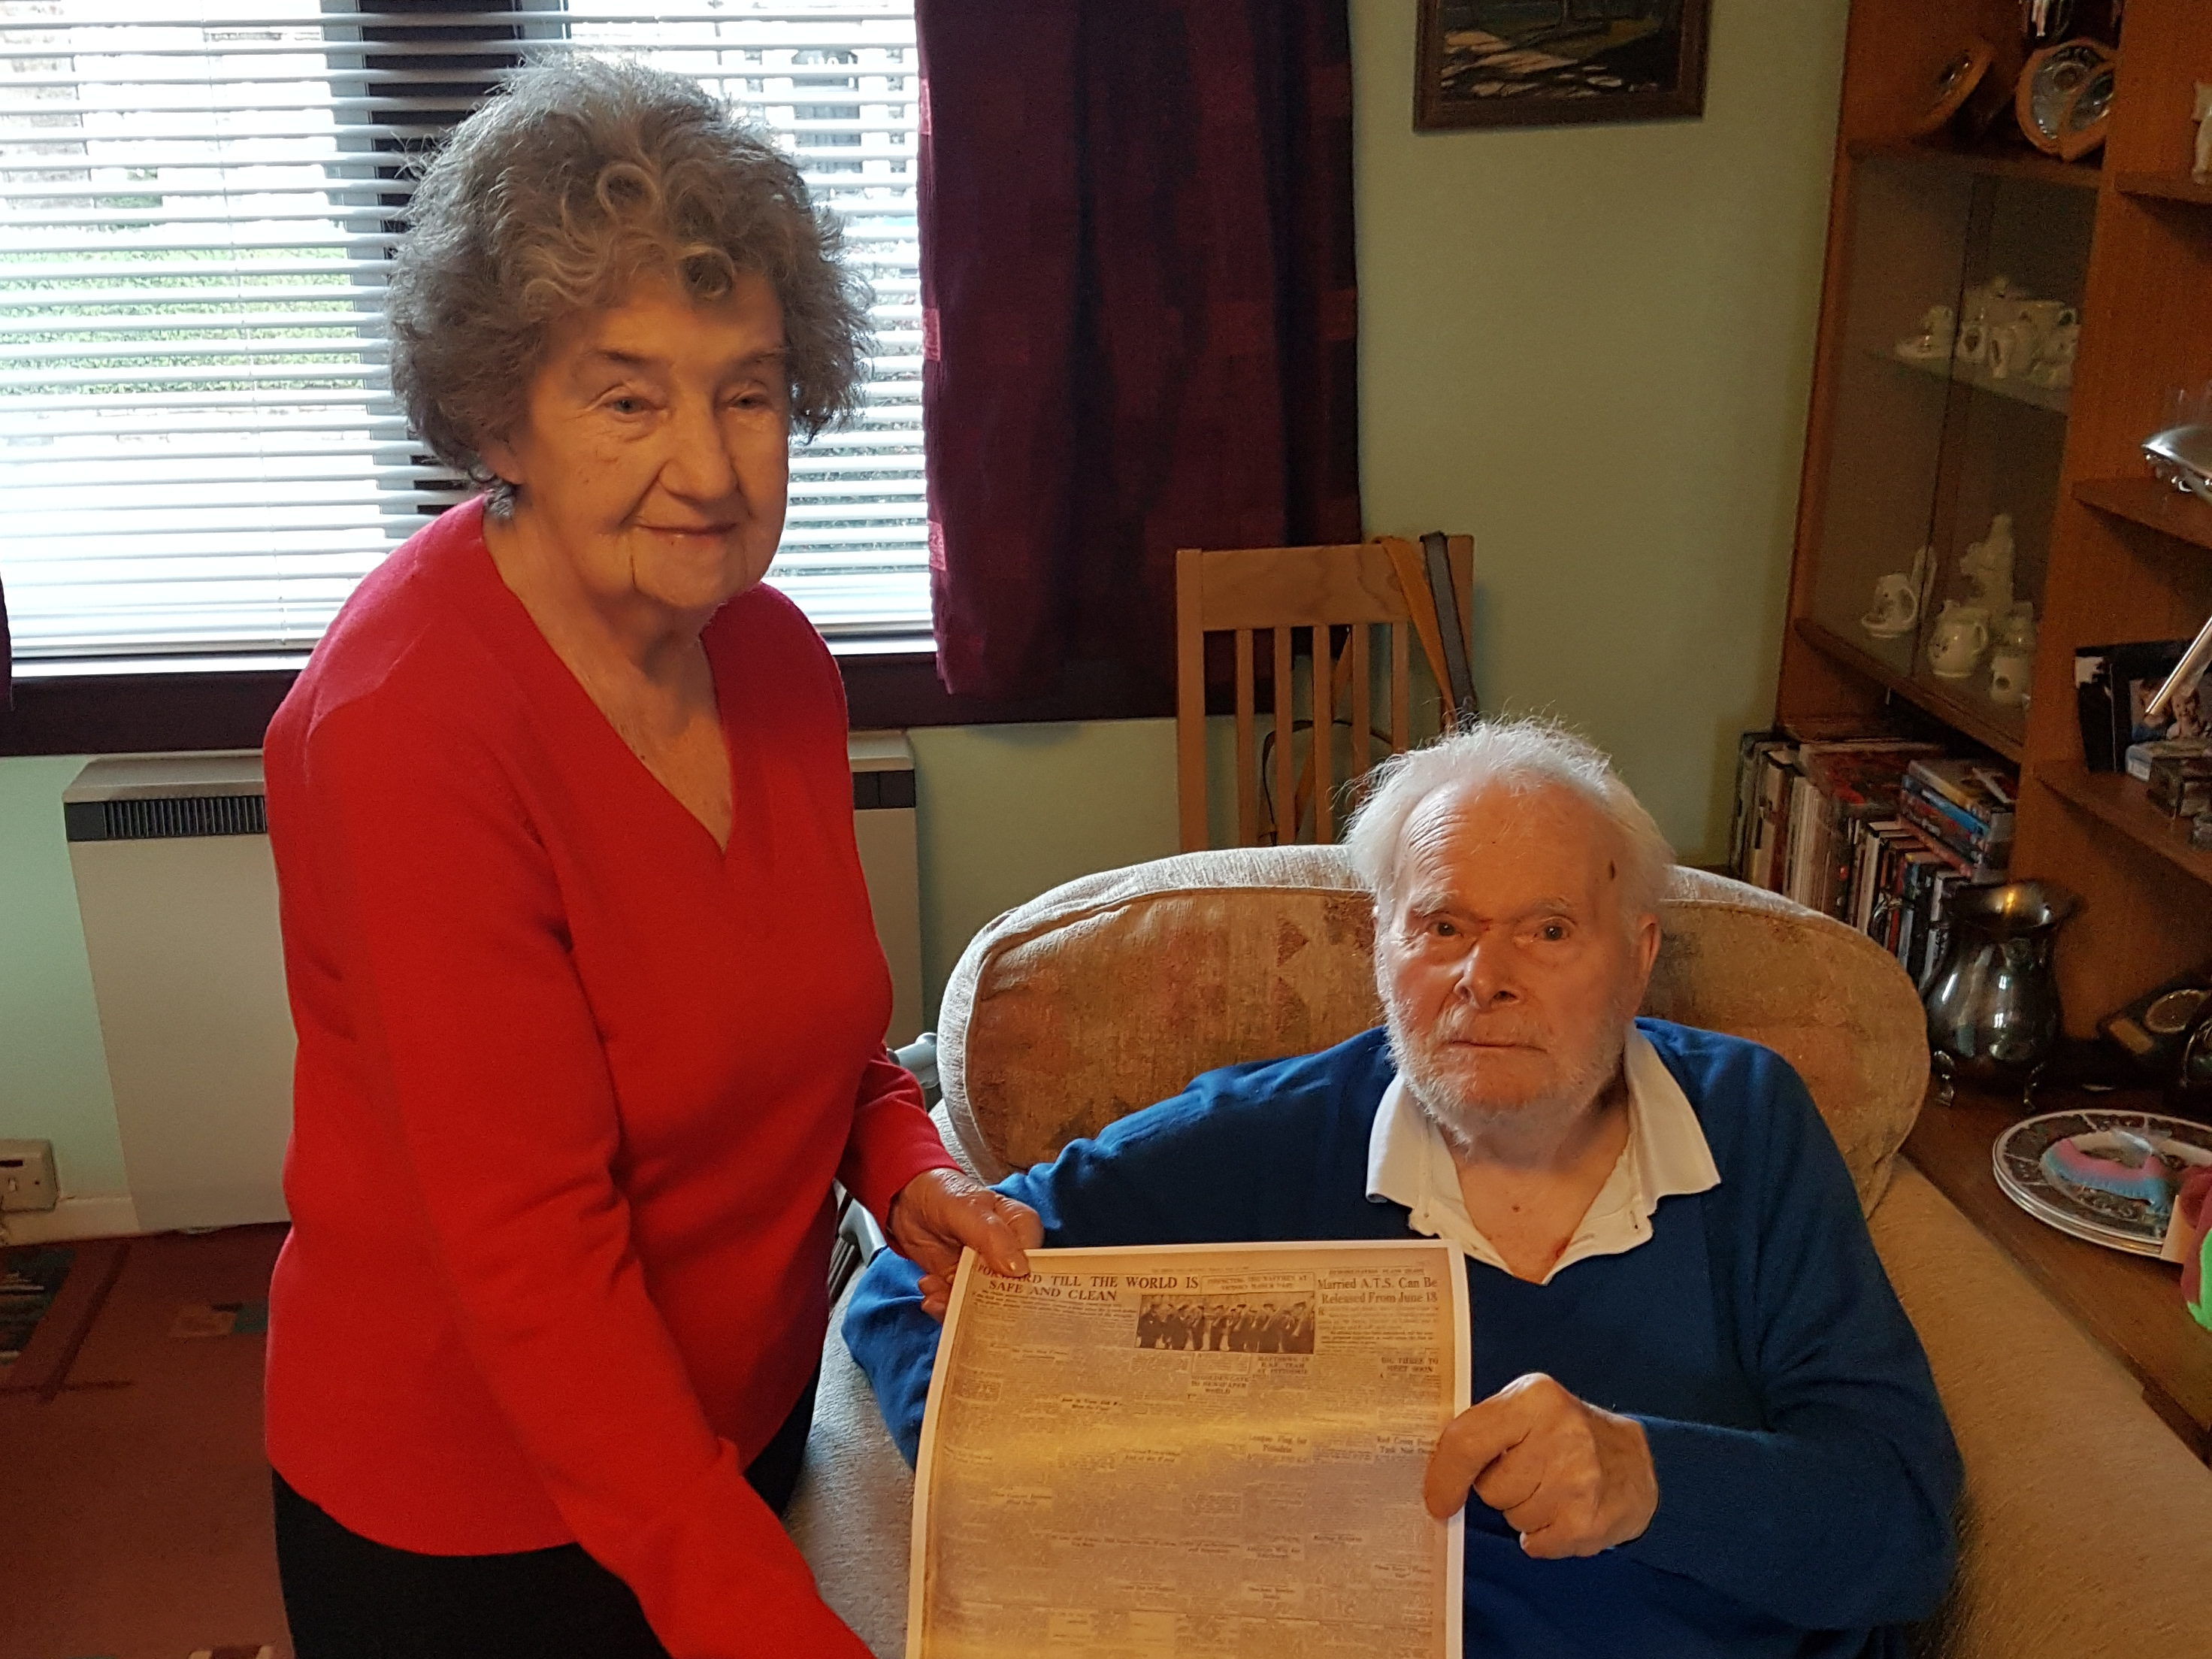 Ronald Halliday and his wife Mary holding a copy of The P&J's coverage of a VE Day parade in 1945